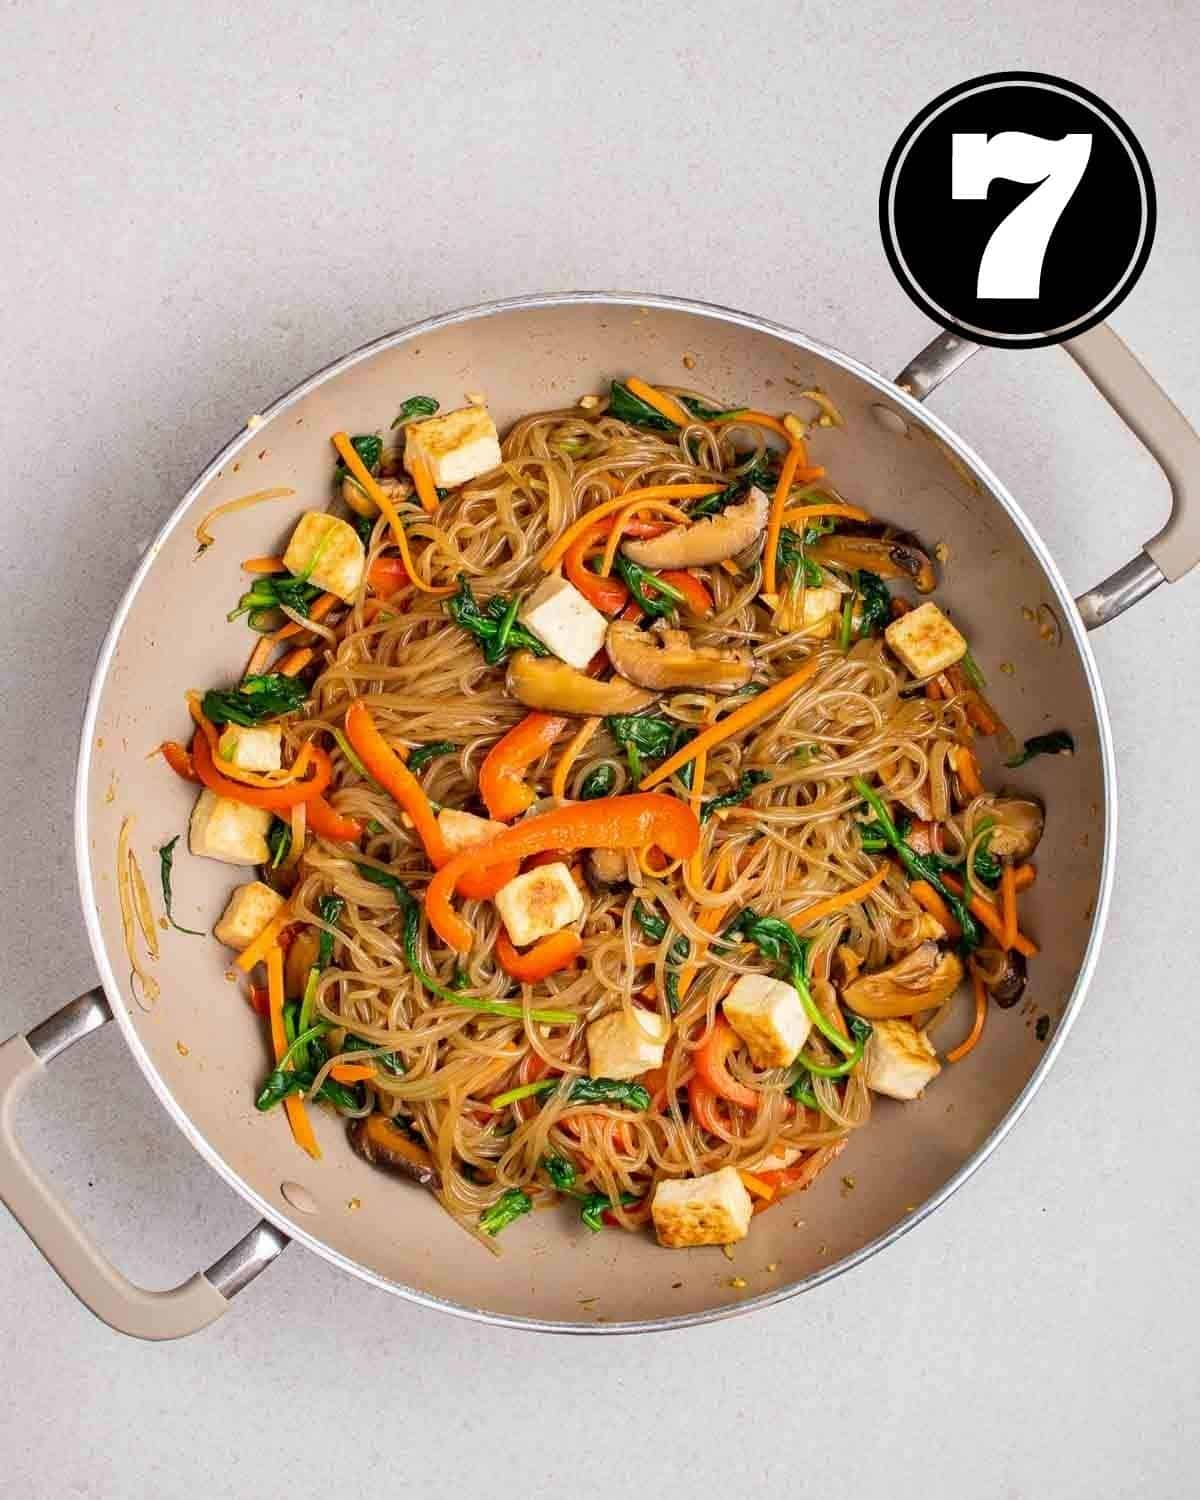 Japchae with tofu cubes in a wok on a grey background.